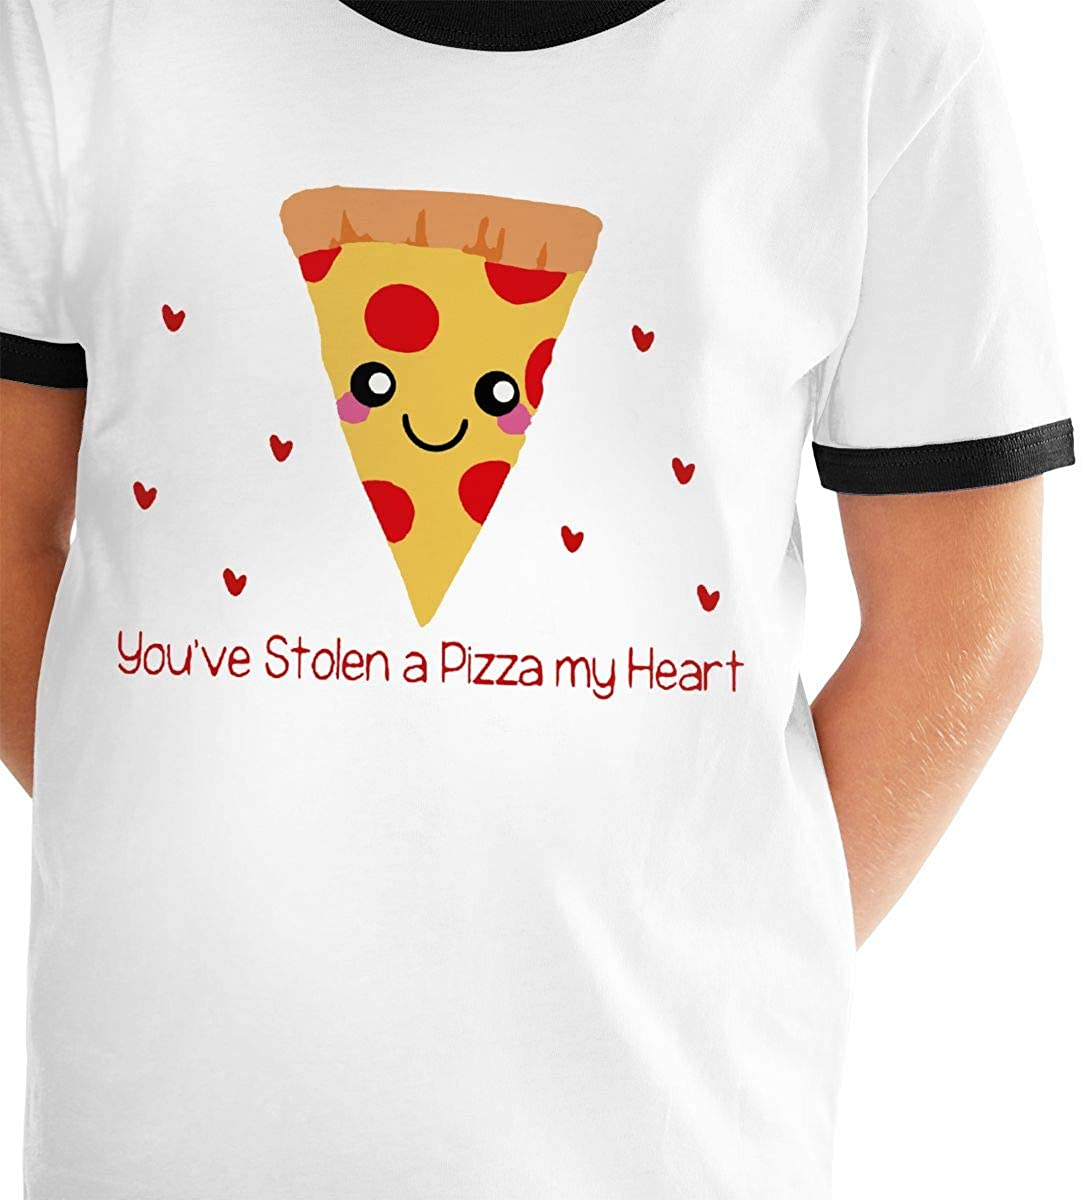 Manlee Youve Stolen A Pizza My Heart Unisex Childrens Short Sleeve T-Shirt Kids Or Little Boys and Girls